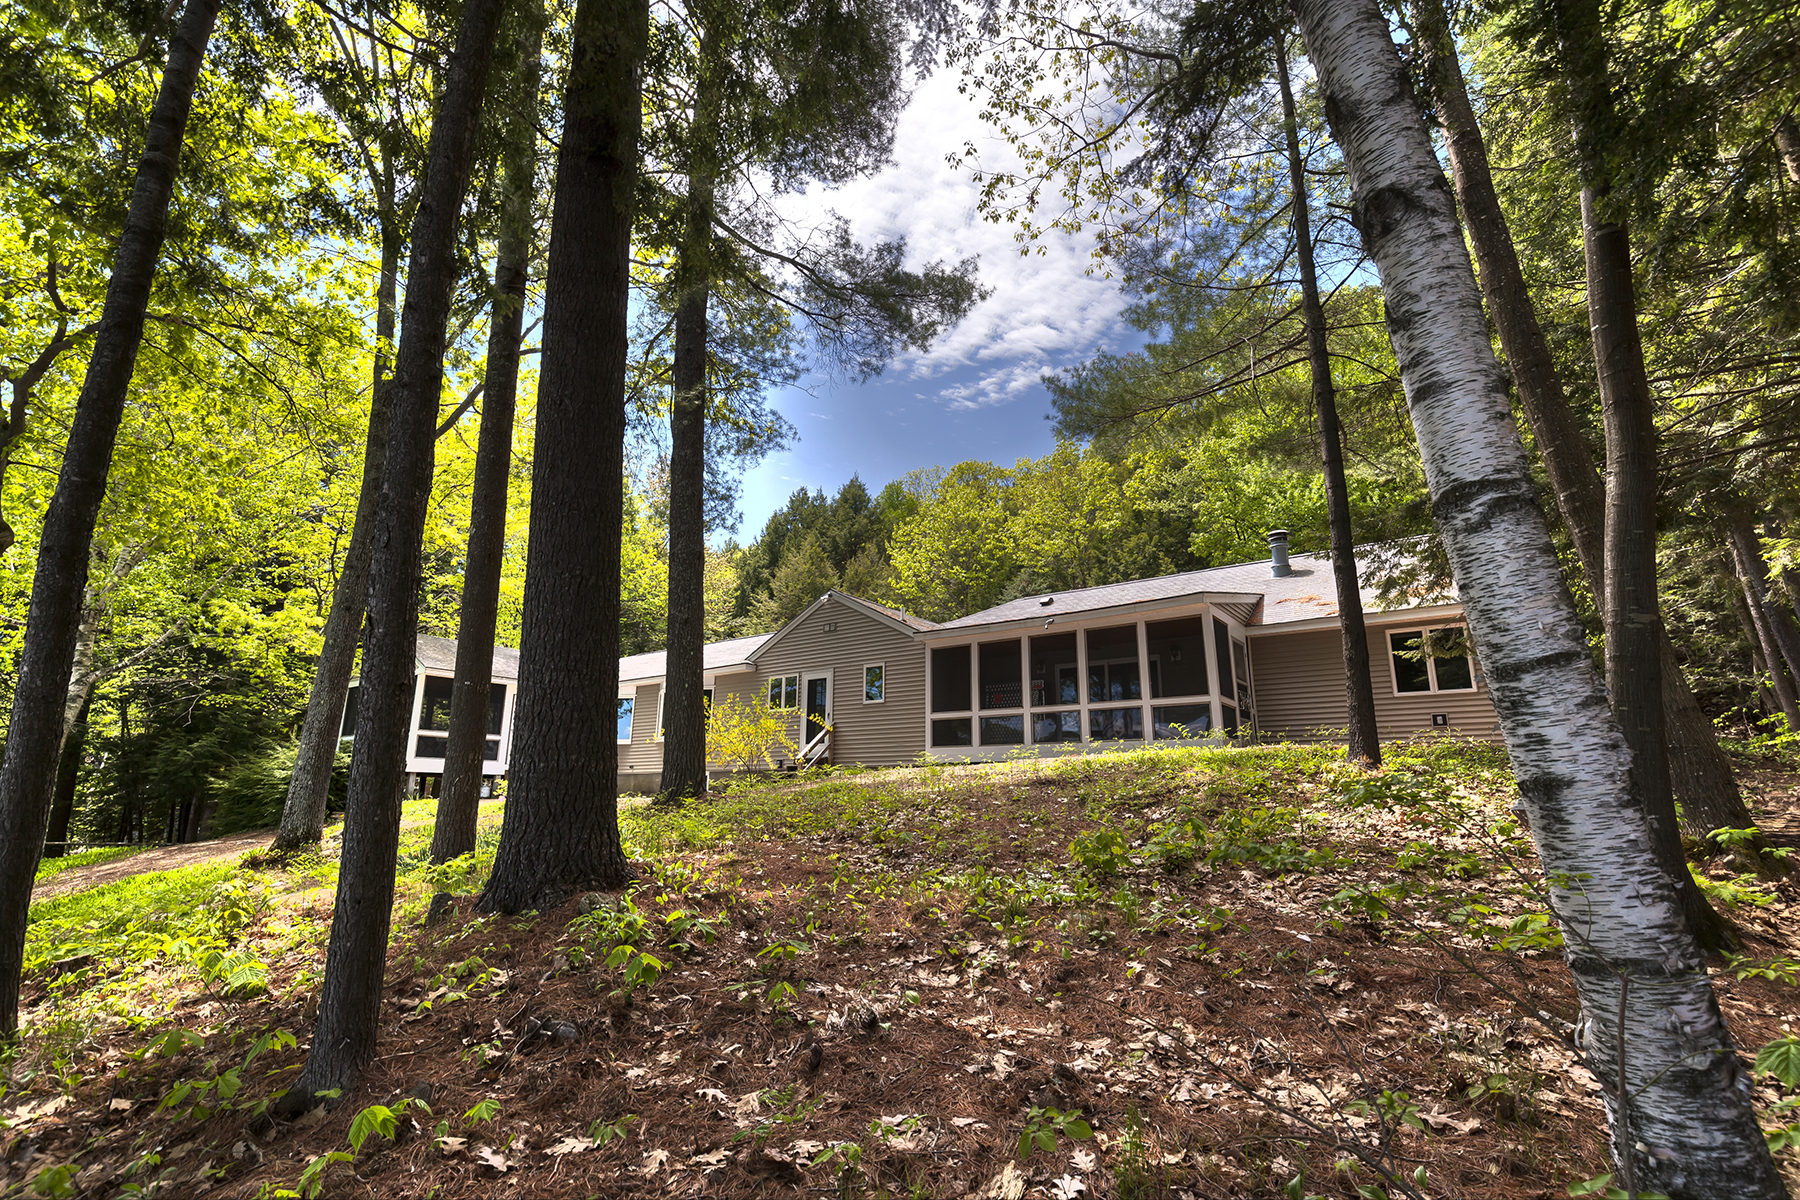 Single Family Home for Sale at 56 Garnet Street, Sunapee Sunapee, New Hampshire 03782 United States